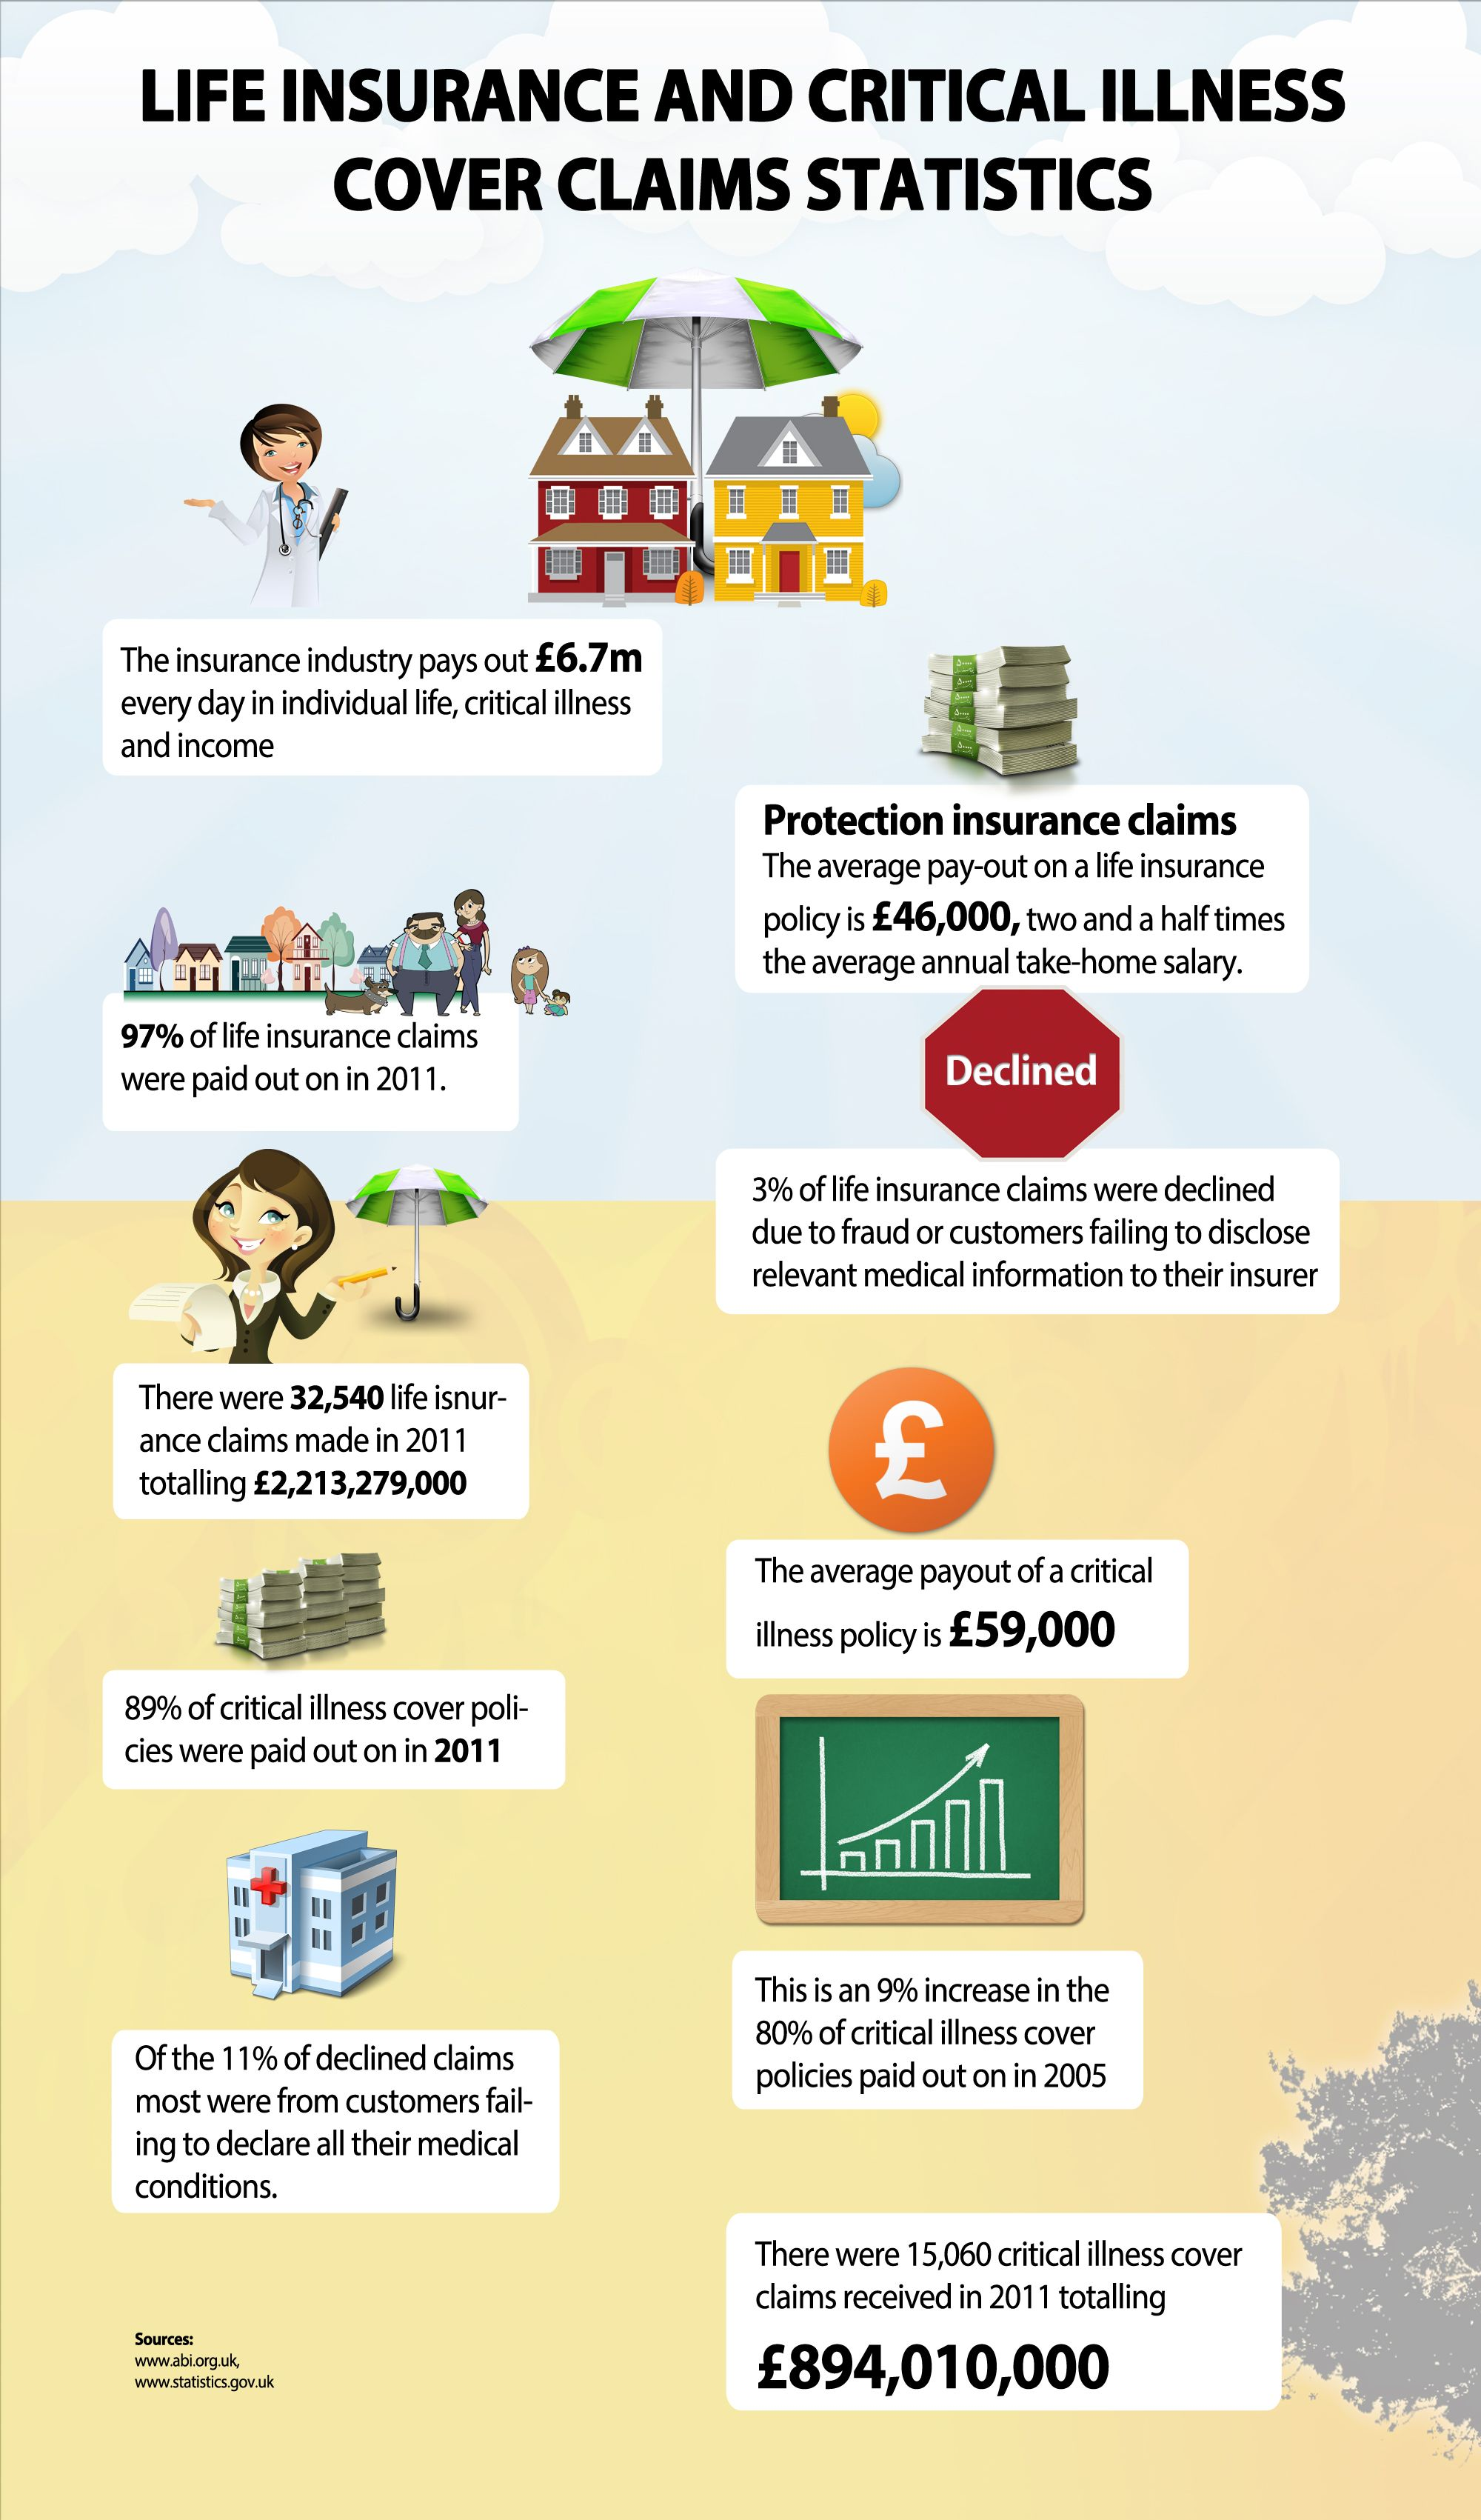 Critical Illness Cover In The Uk This Infographic Outlines The Critical Illness And Life Insu Life Insurance Uk Life Insurance Policy Content Insurance